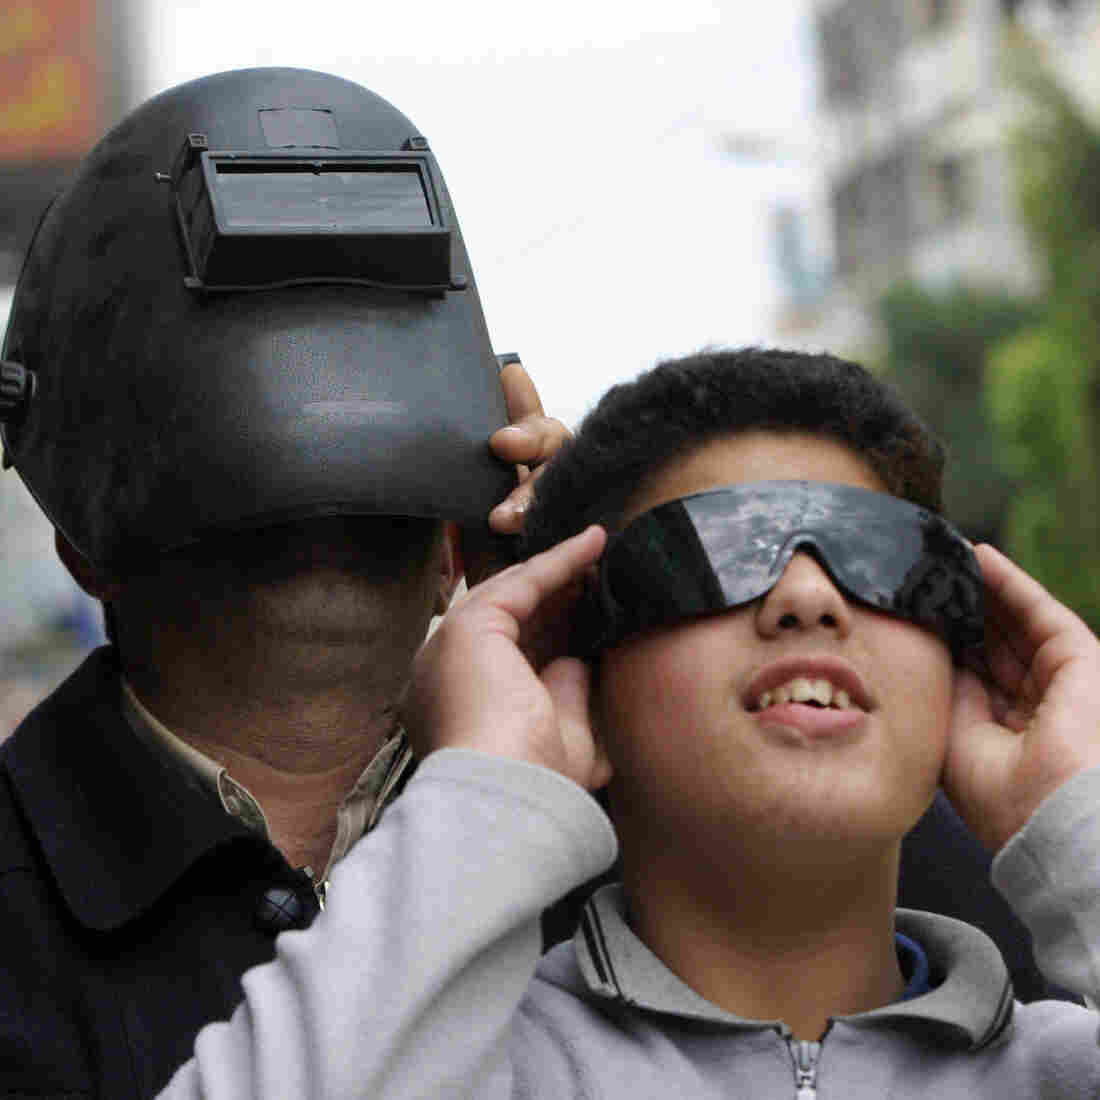 Safety over style: In 2006, a Palestinian man and boy were careful to protect their eyes while watching a partial eclipse of the sun. The same cautions are in order for Venus' transit of the sun on Tuesday.